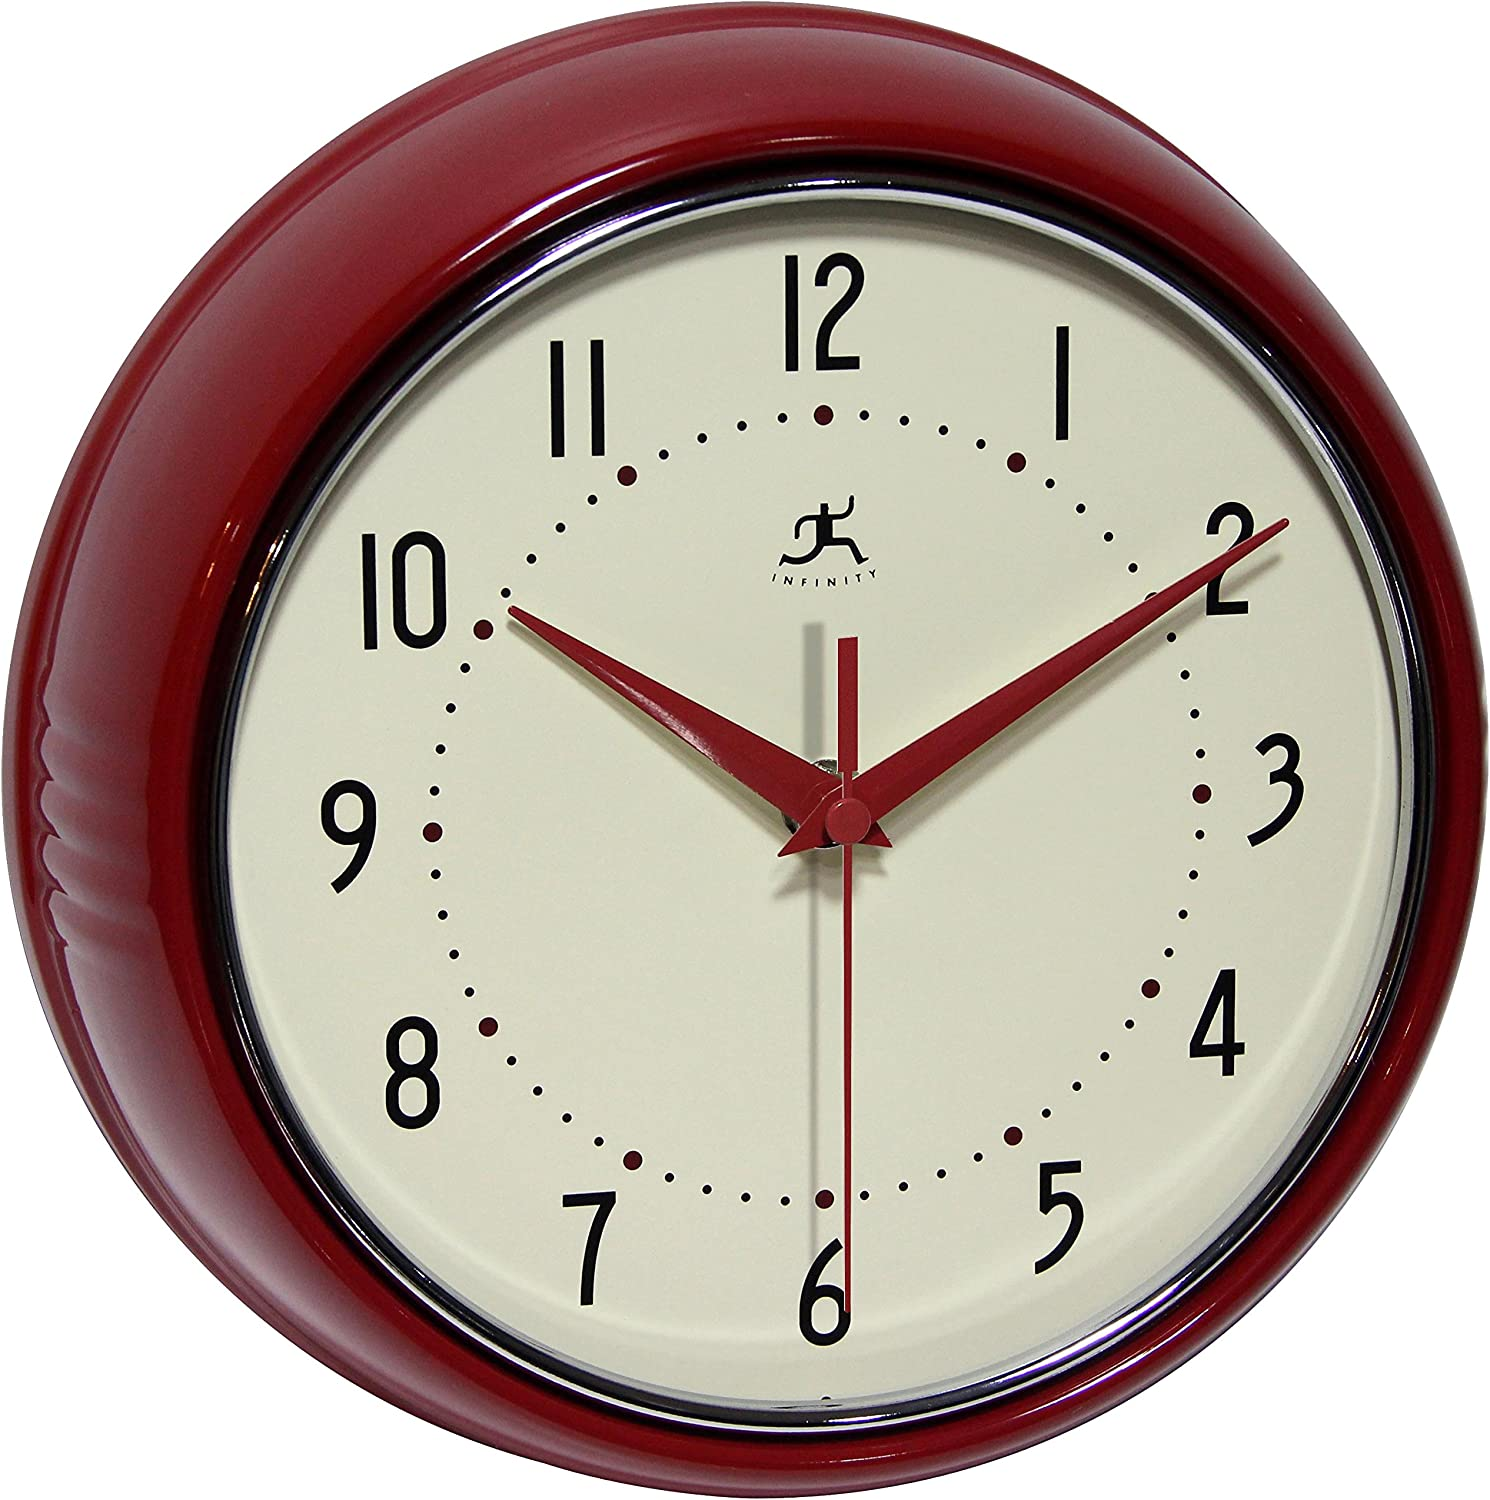 Amazon Com Infinity Instruments Round Silent Red Retro Indoor Wall Clock Home Kitchen